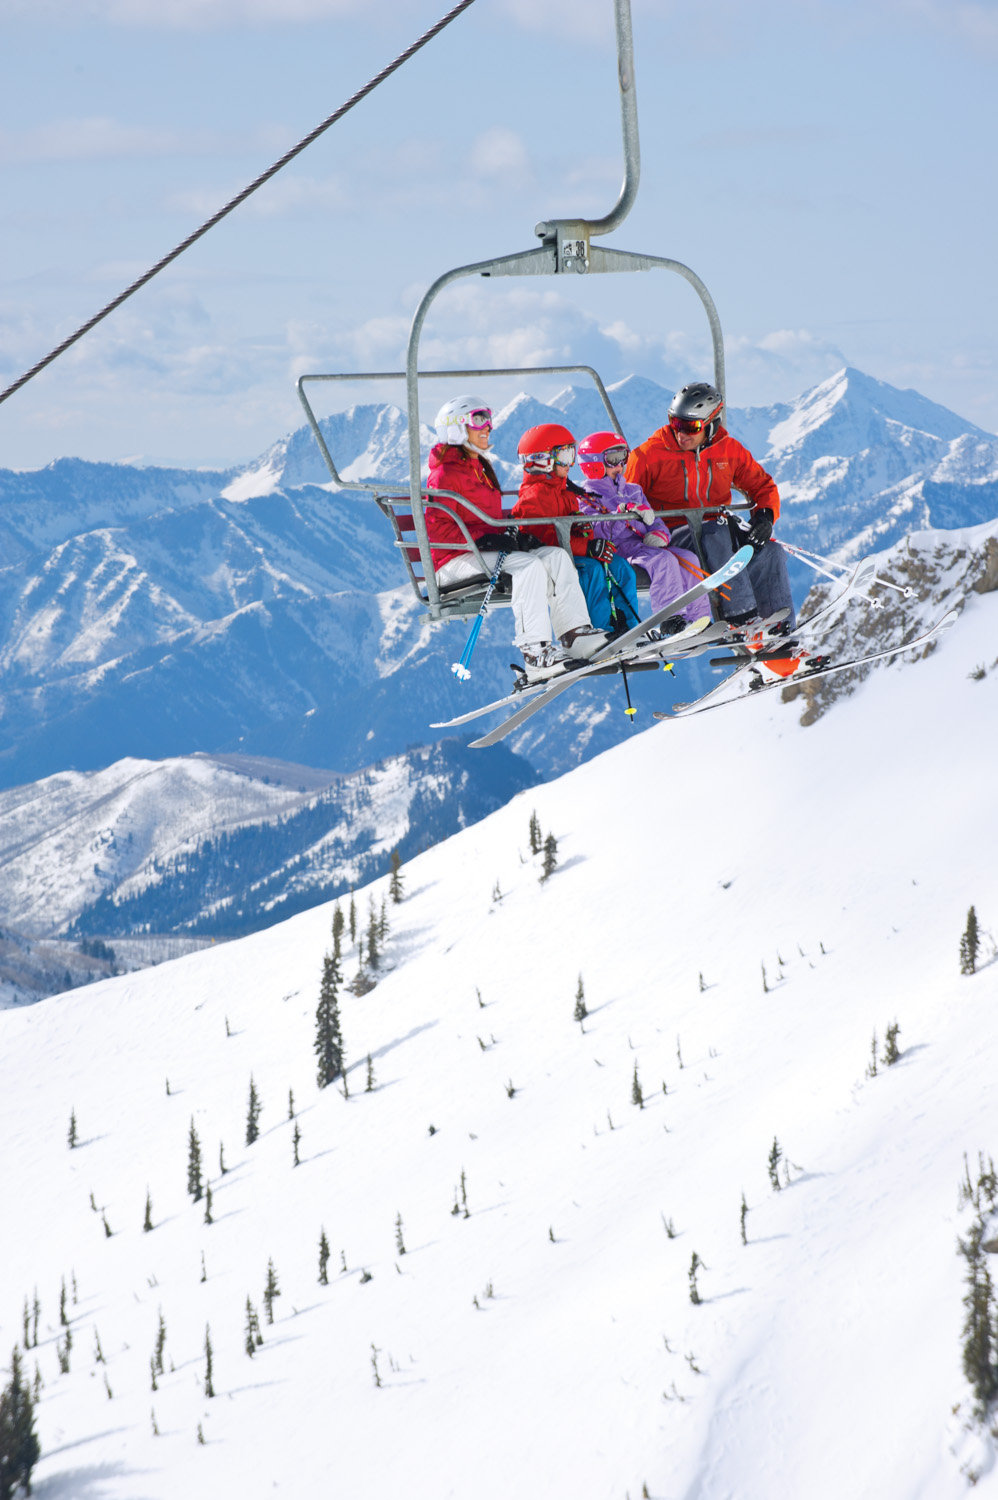 Snowbird's mission statement is: Making memories to match our mountain.